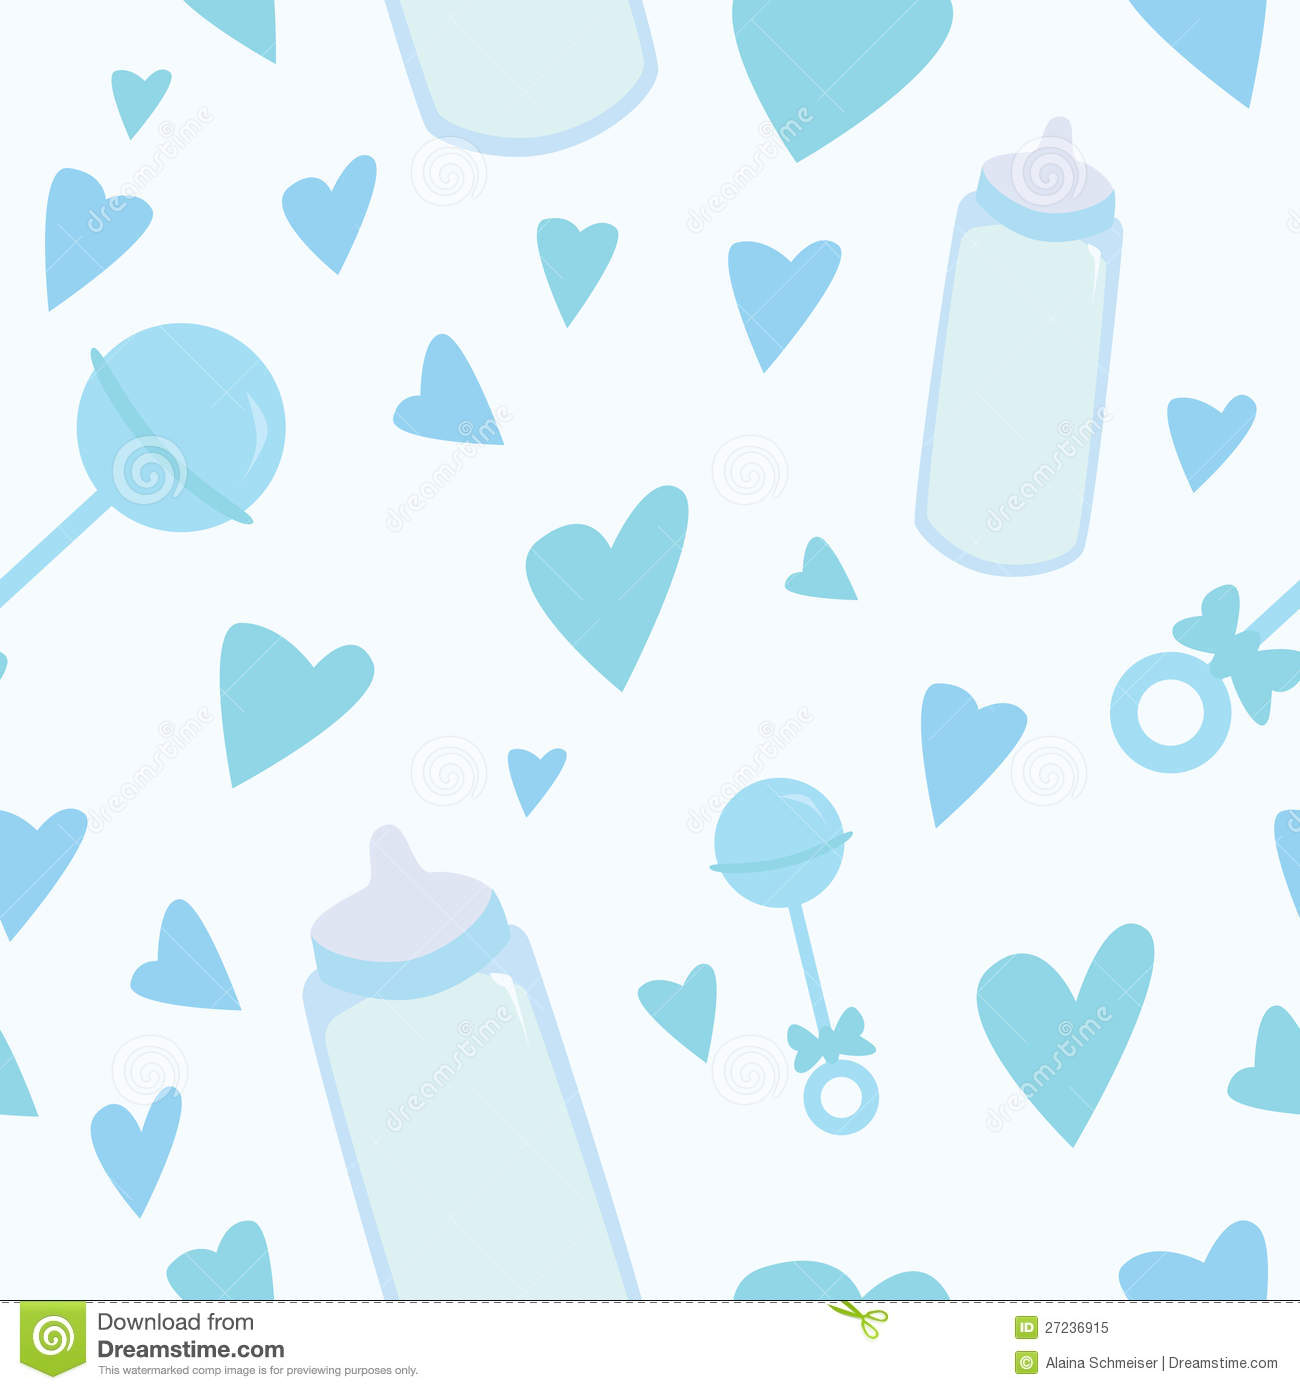 More similar stock images of   Baby Boy Pattern  Baby Boy Patterns